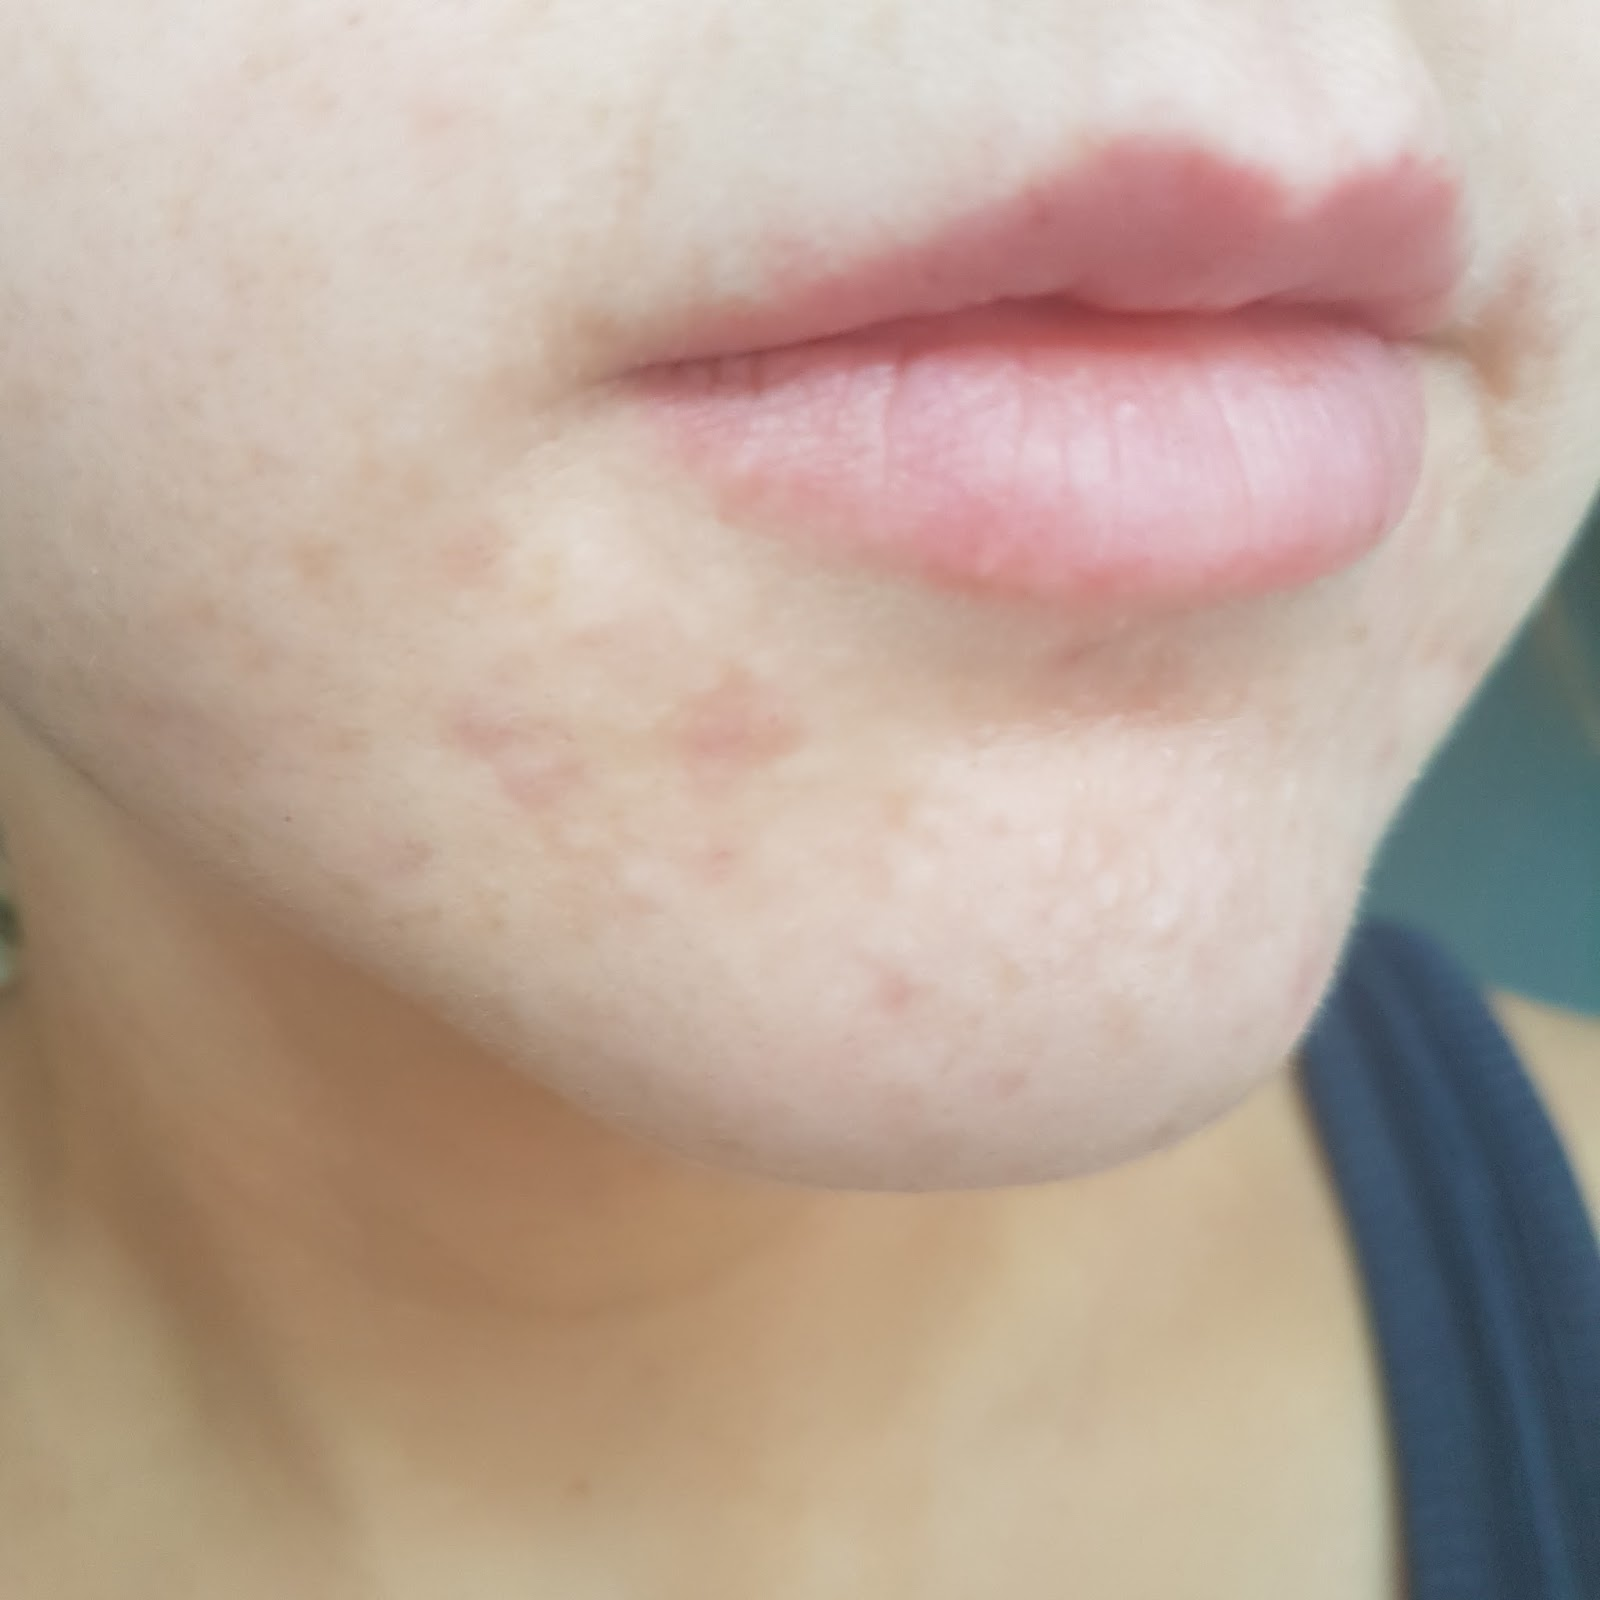 Acne After Image